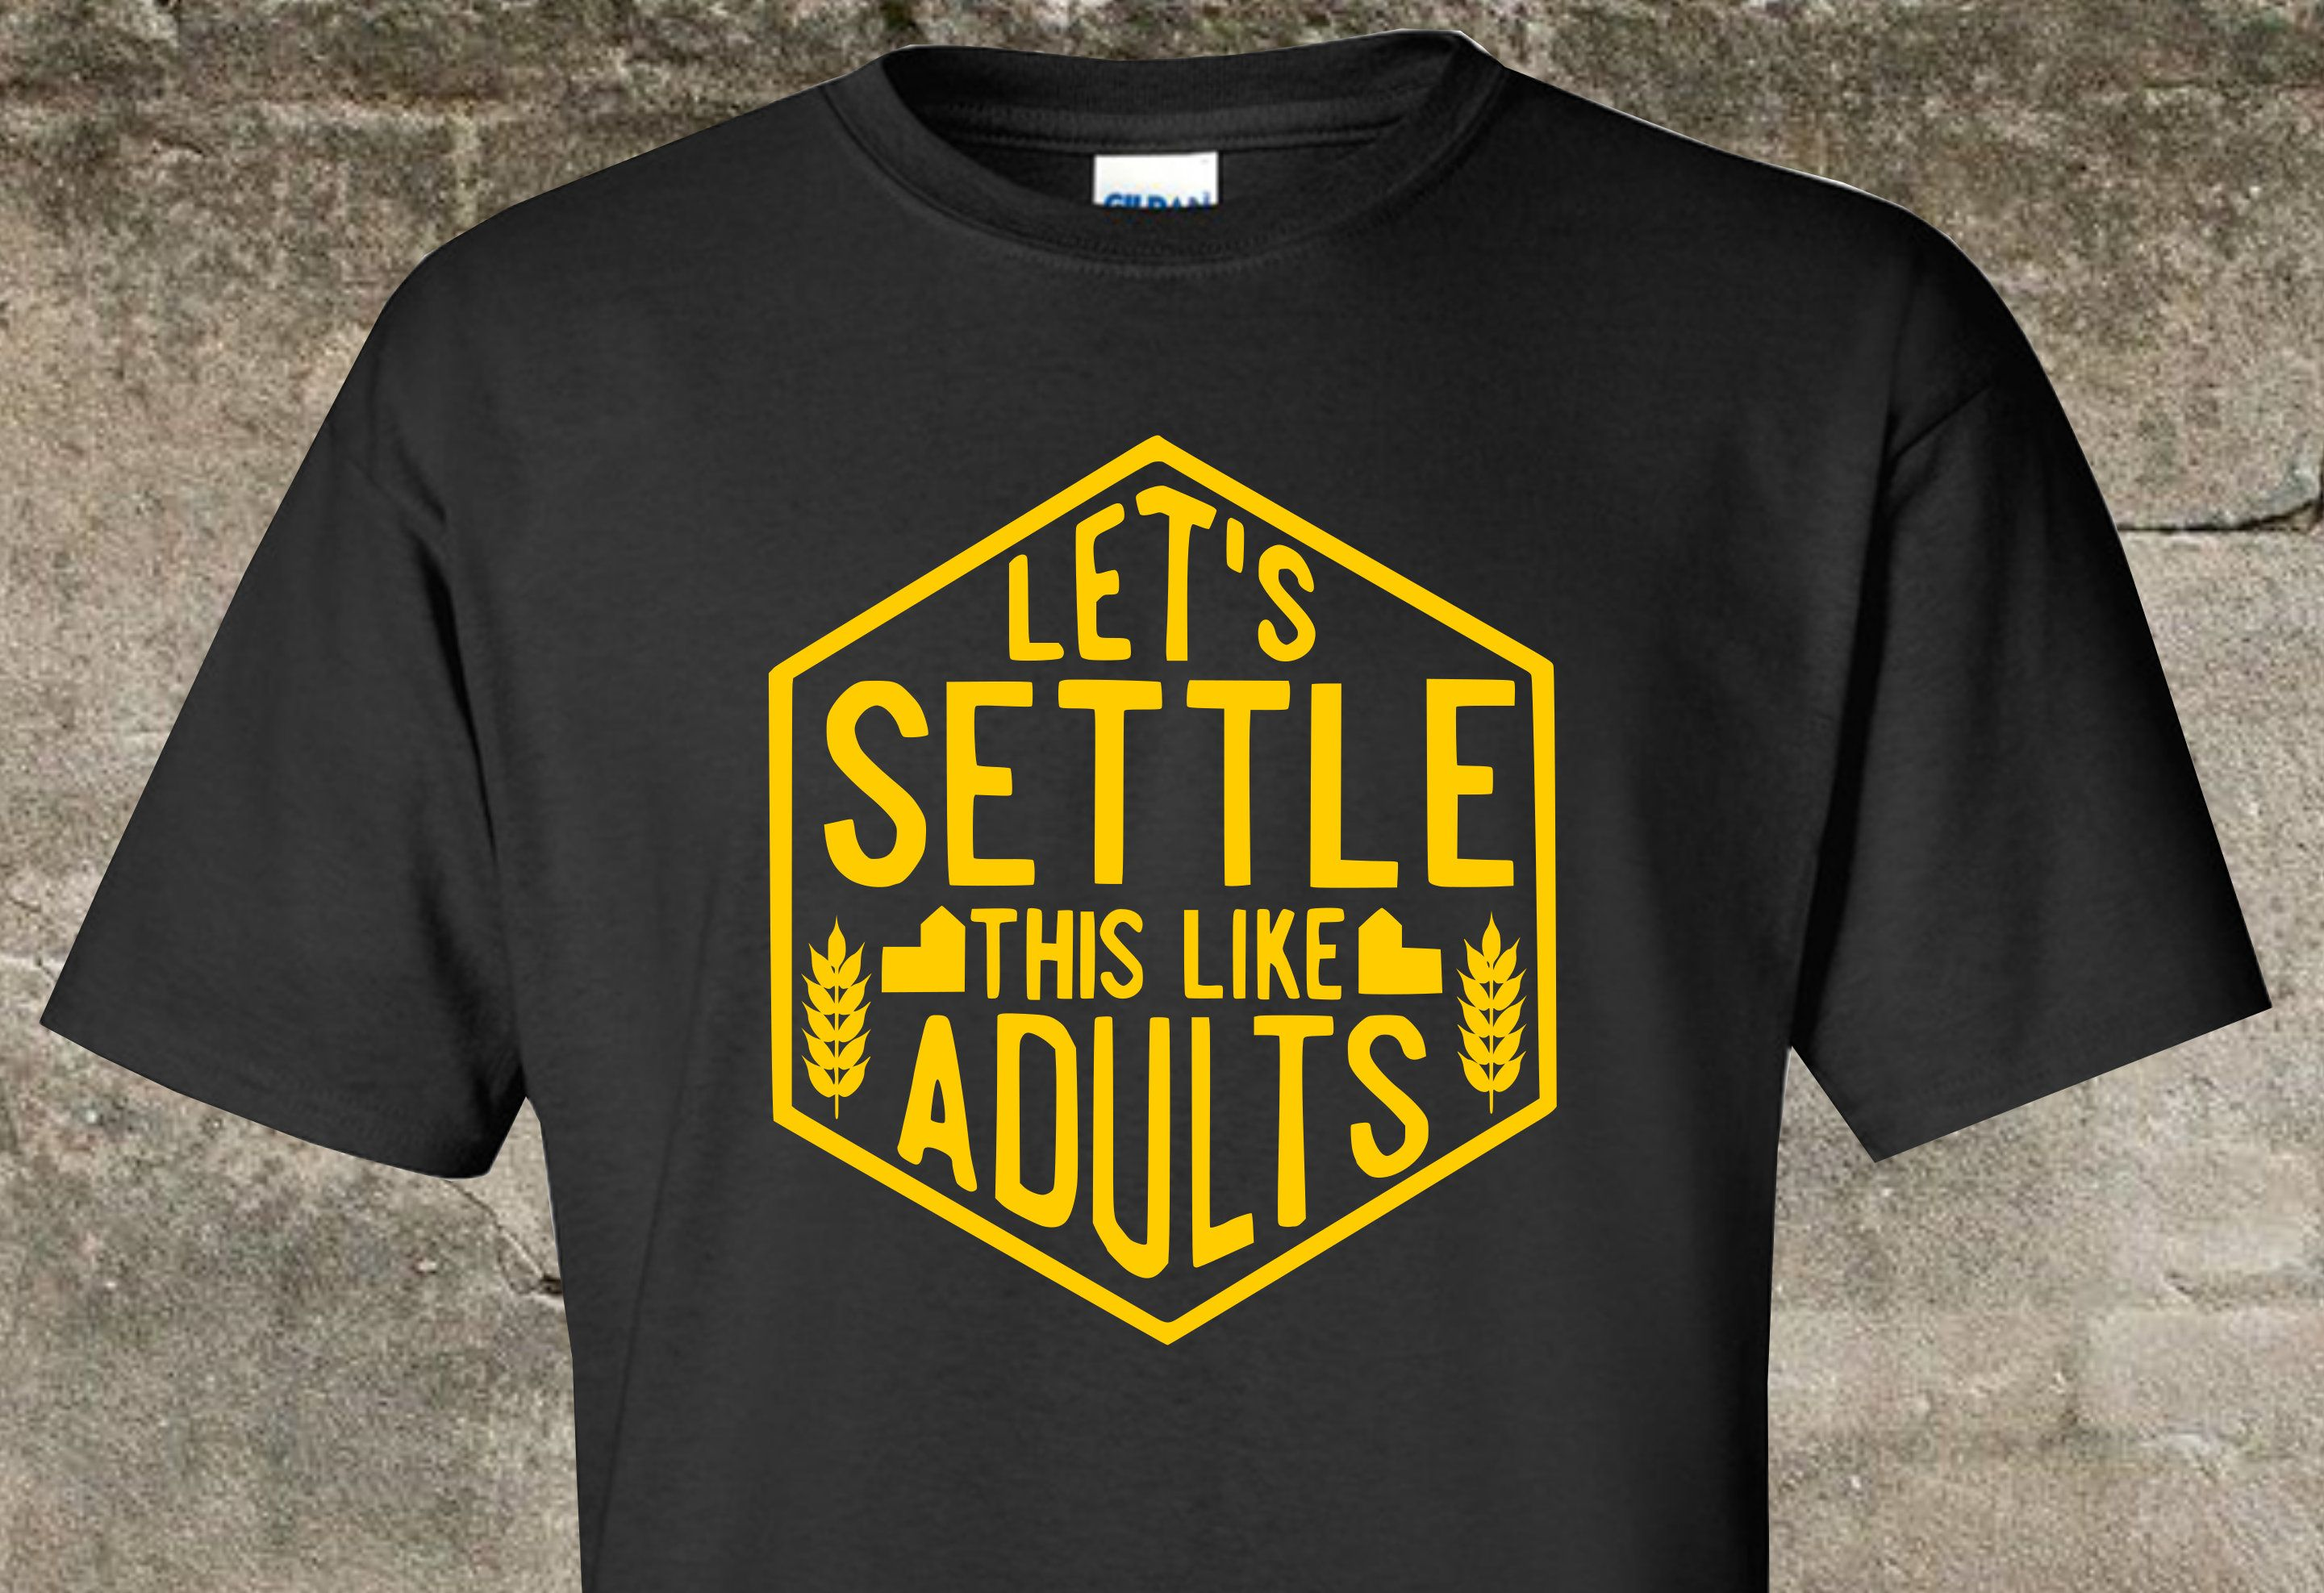 ca0e5457 Catan - Funny Shirt - Inspired by Settlers of Catan Game - Let's Settle  This Like Adults- Board Game Shirt by FireAntTees on Etsy